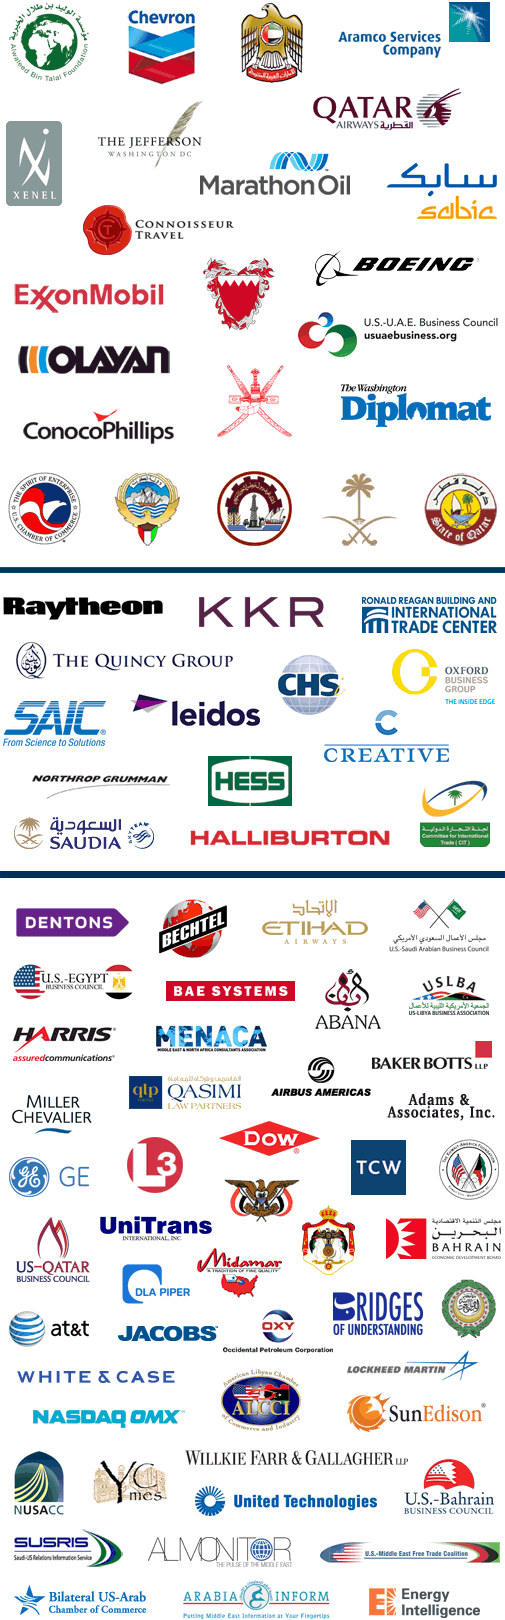 2013 Arab-U.S. Policymakers Conference Sponsors